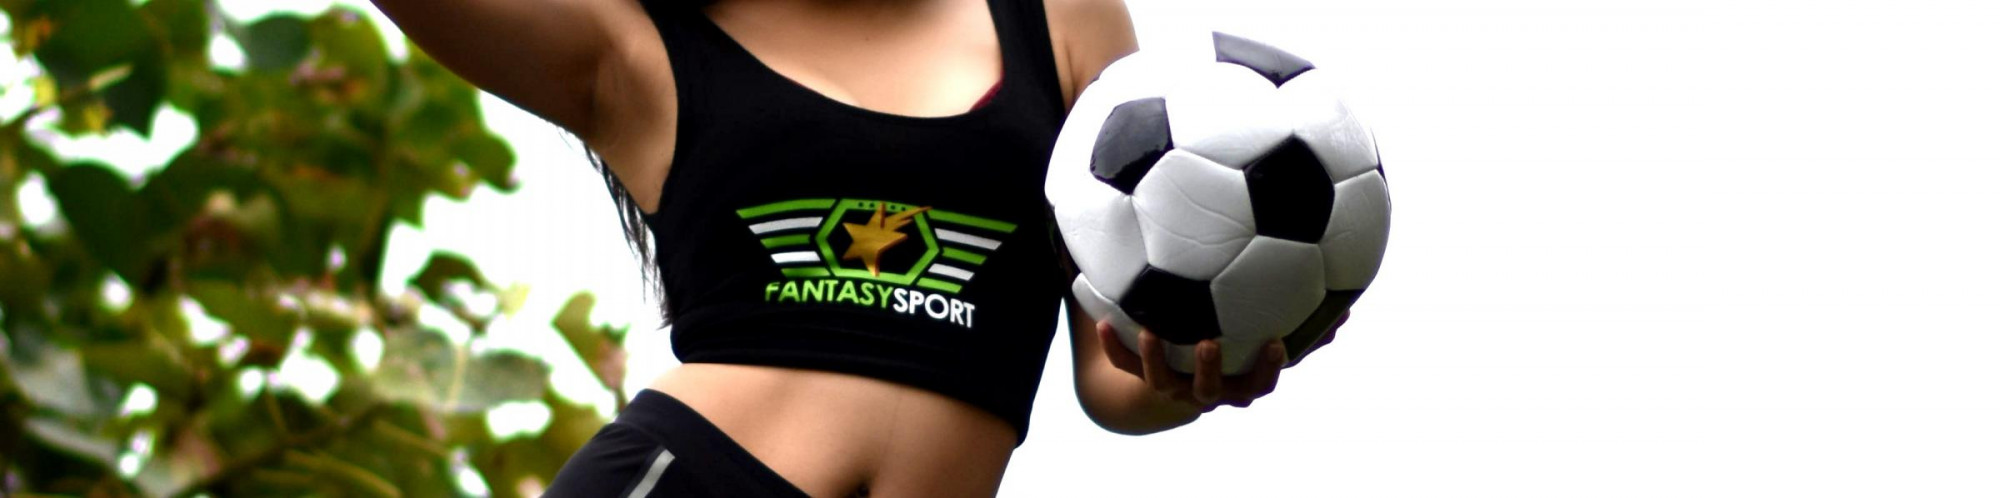 How many teams are there in Fantasy Sports contests?